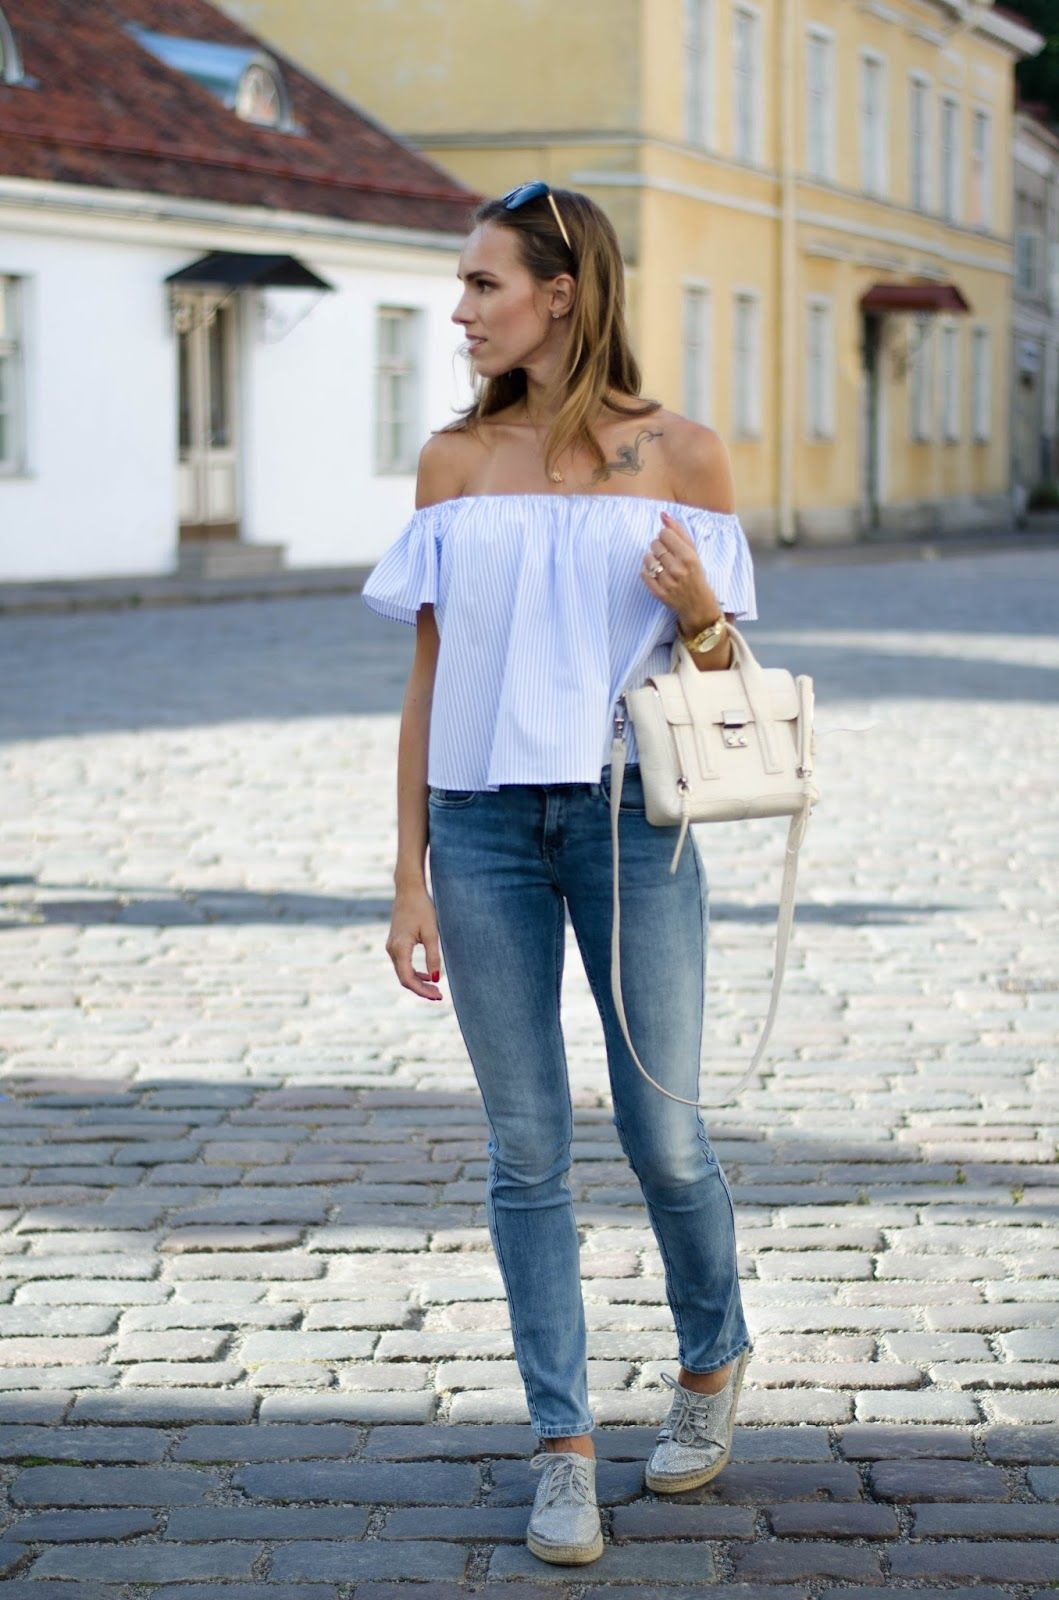 6d88a1790a62 kristjaana mere light blue striped off shoulder top jeans outfit ...